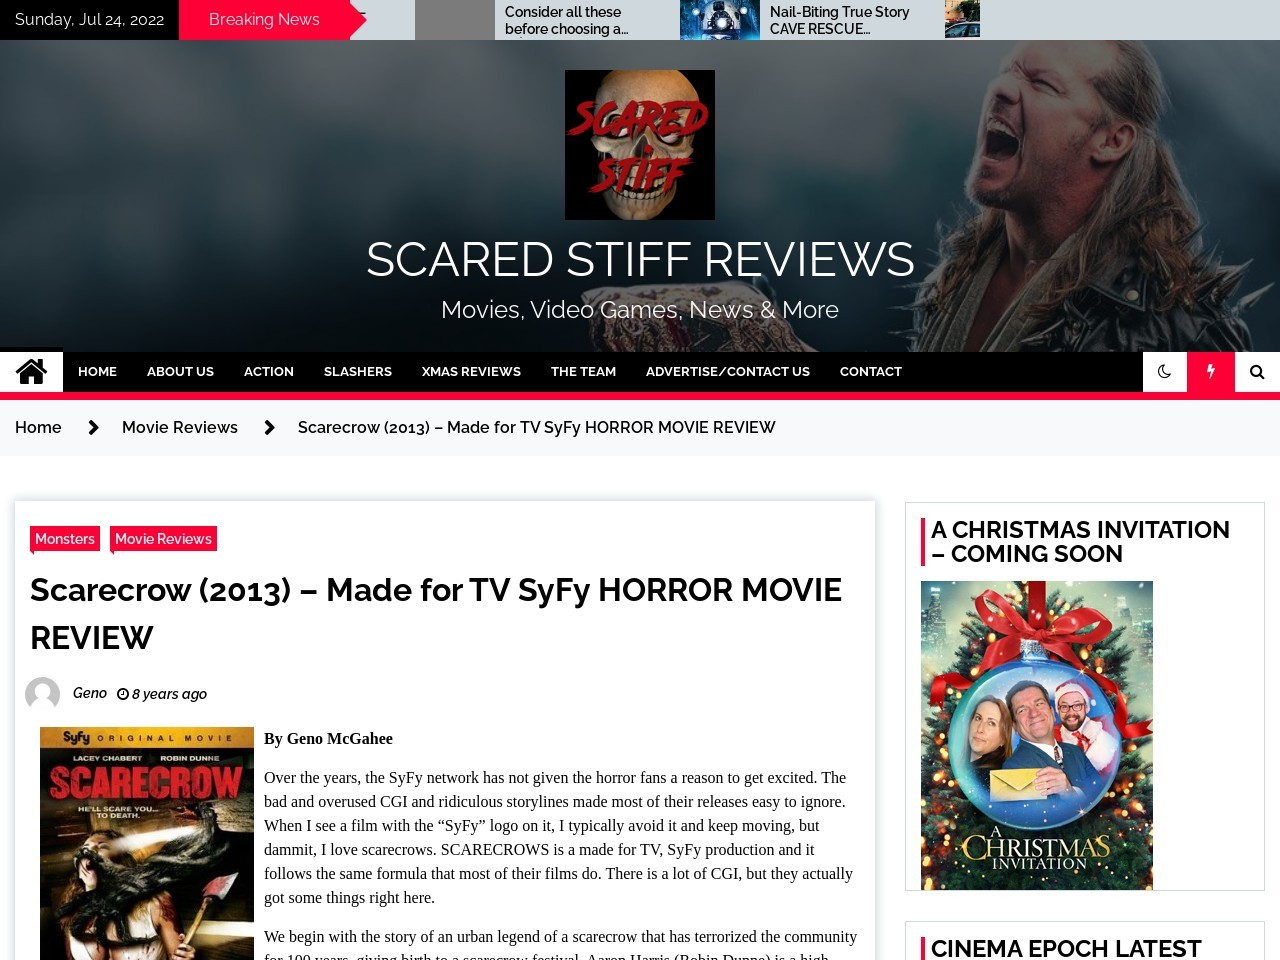 Scarecrow (2013) – Made for TV SyFy HORROR MOVIE REVIEW